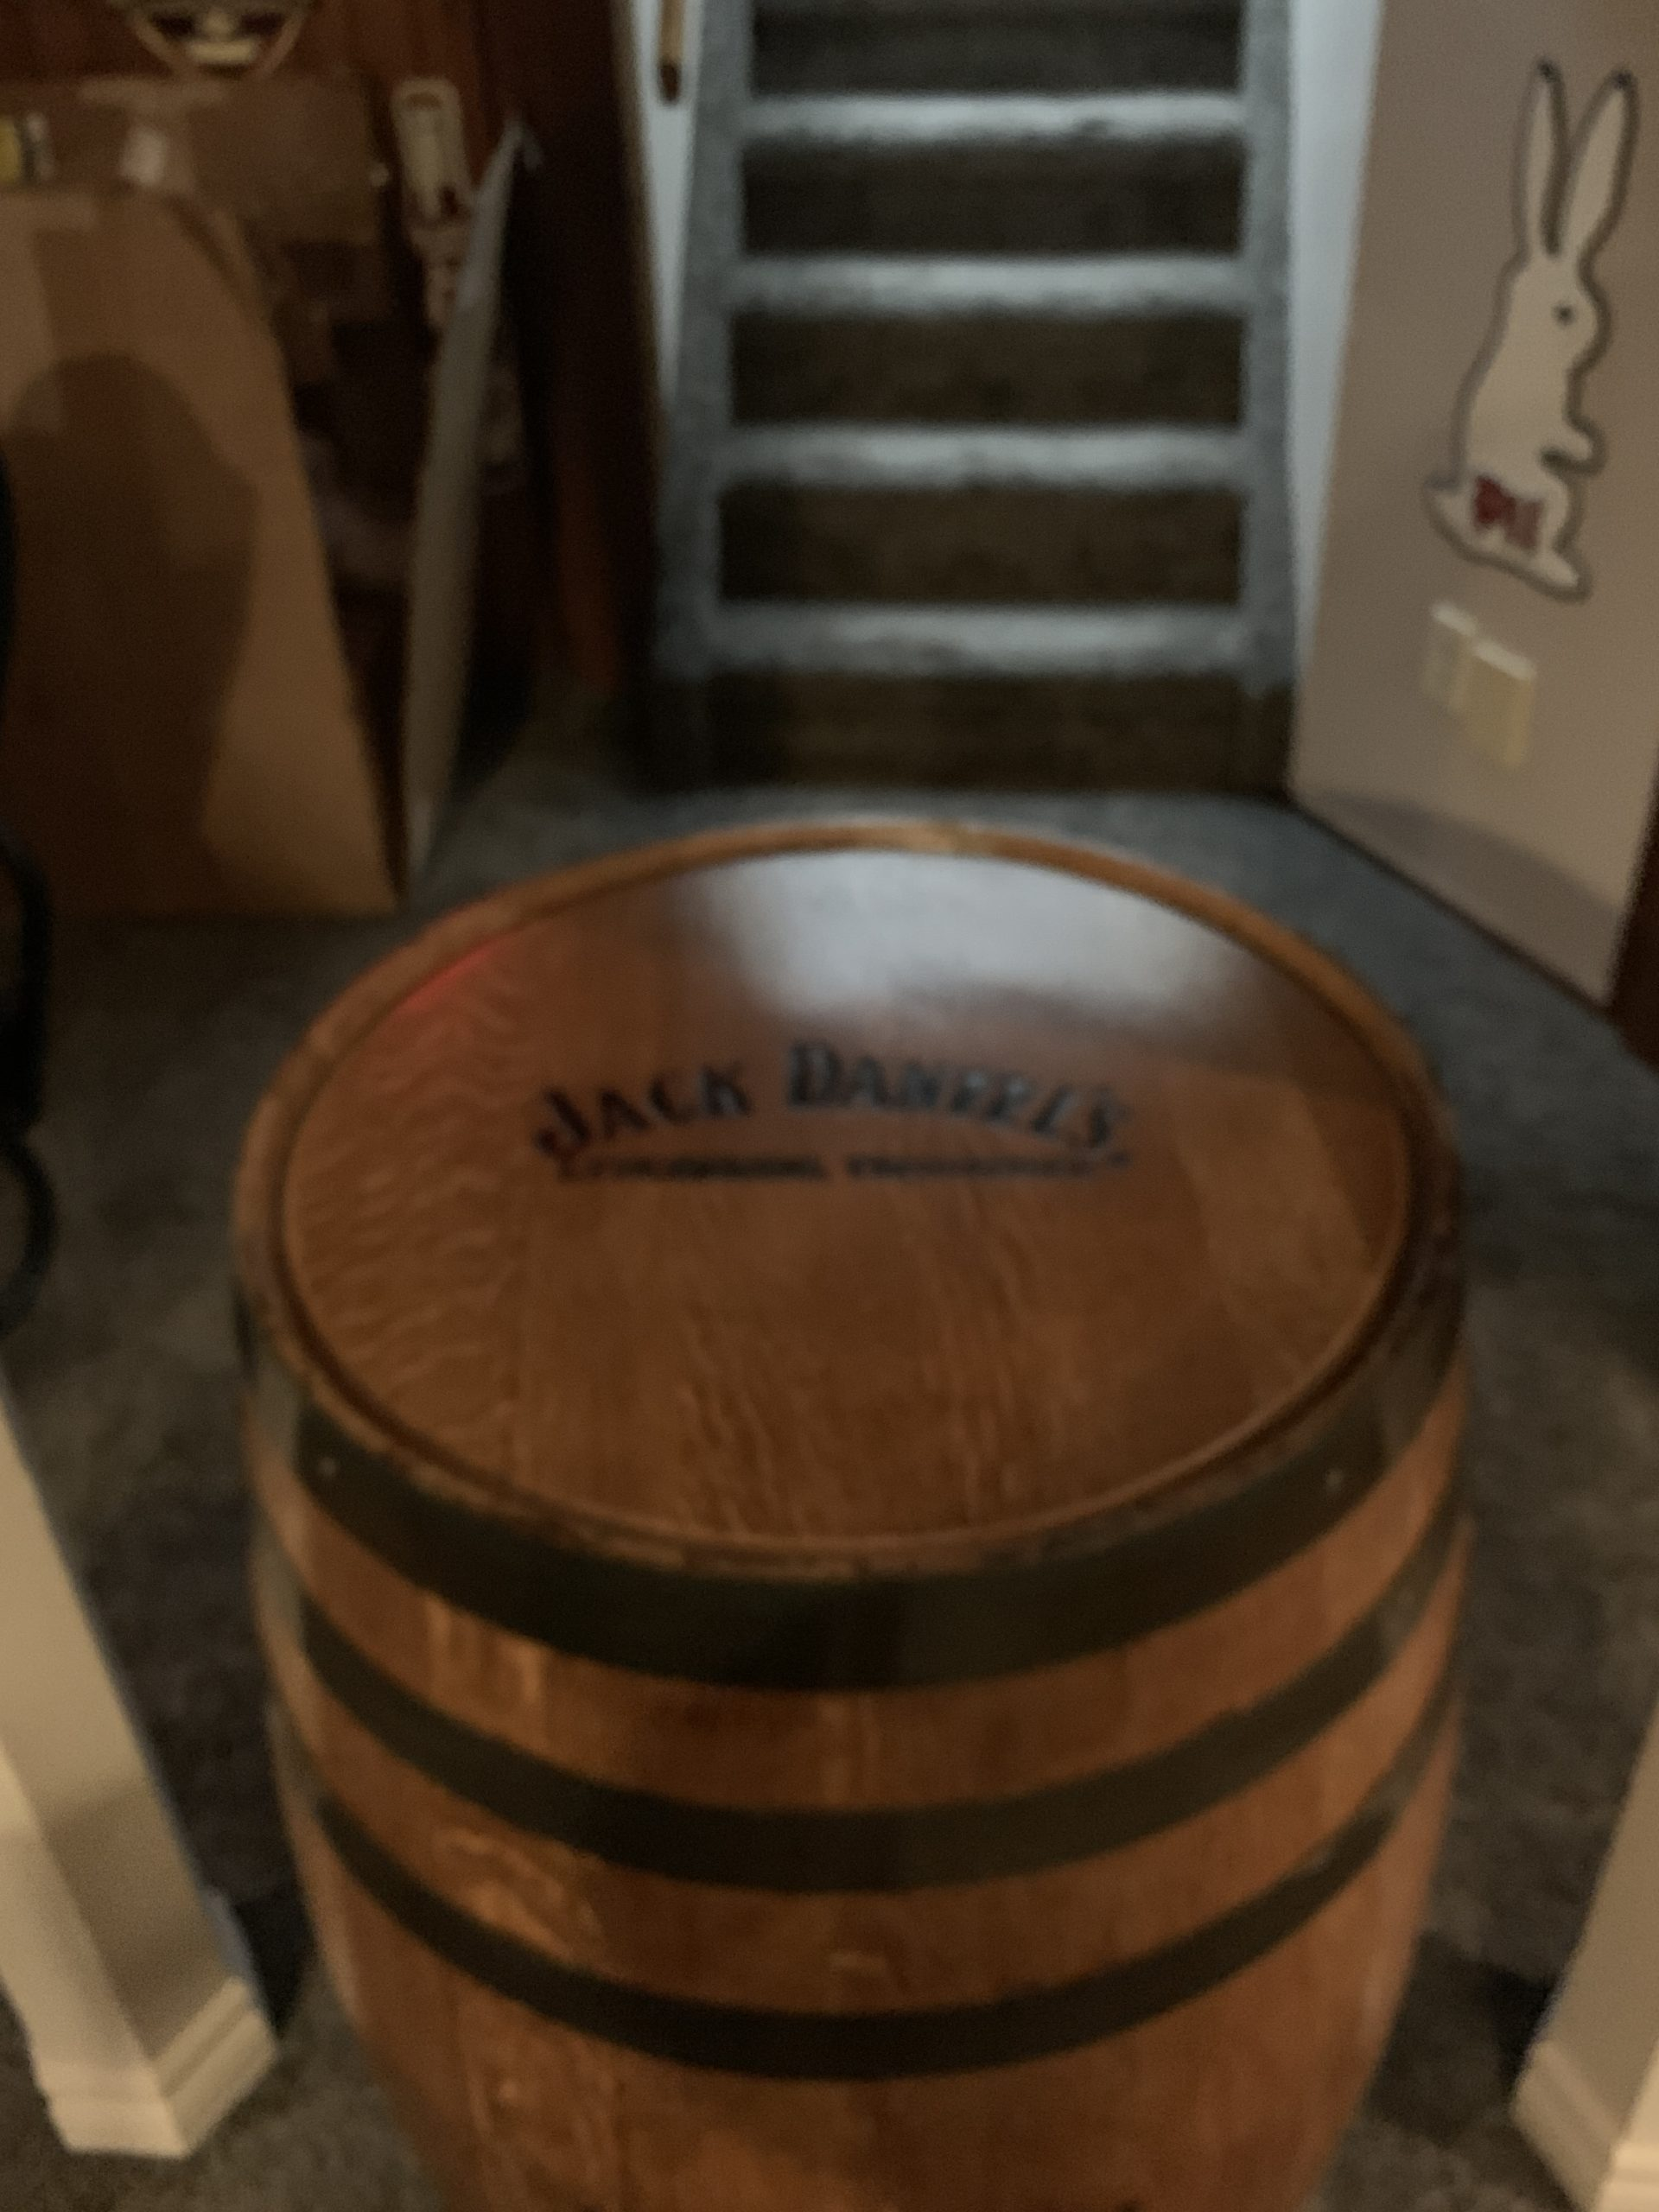 New for the cave got it from Tennessee Jack Daniel's a nice addition 71618797-35FE-4CC8-98D0-F5A99